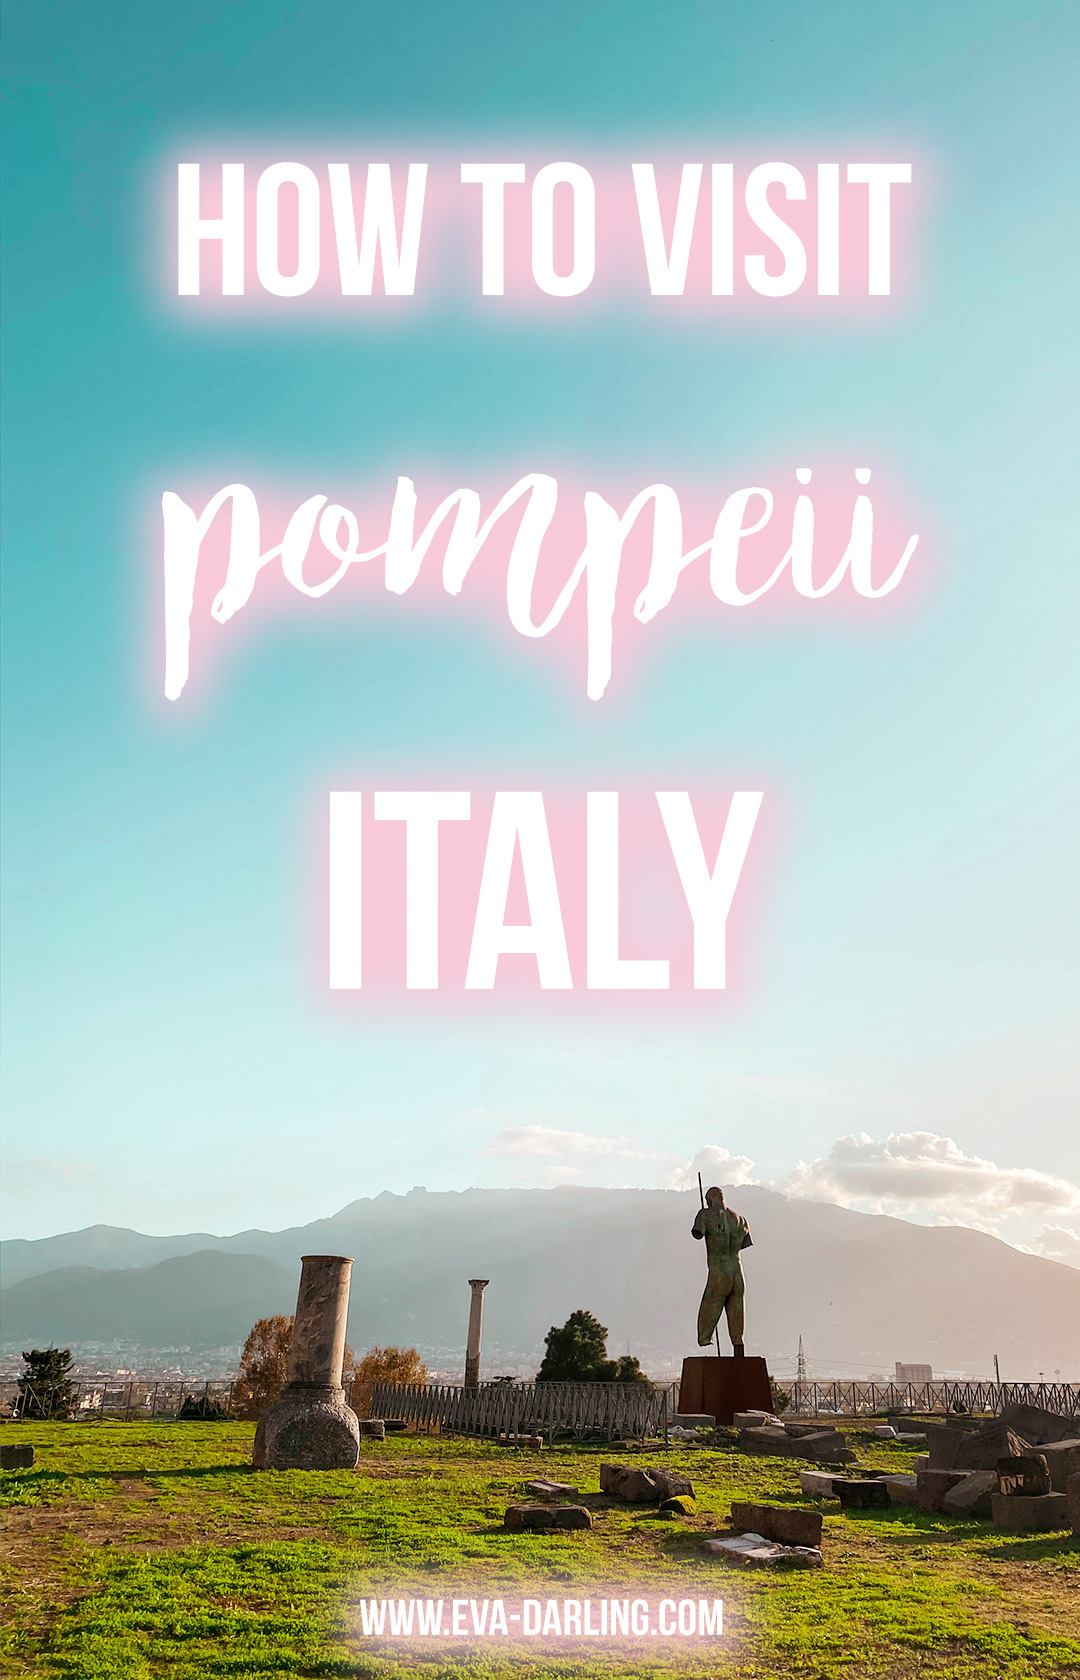 how to visit pompeii italy province of naples things to do in pompeii where to go in pompeii unesco world heritage site park admission travel blogger eva phan eva darling solo female travel traveler tips alone daedalus sculpture